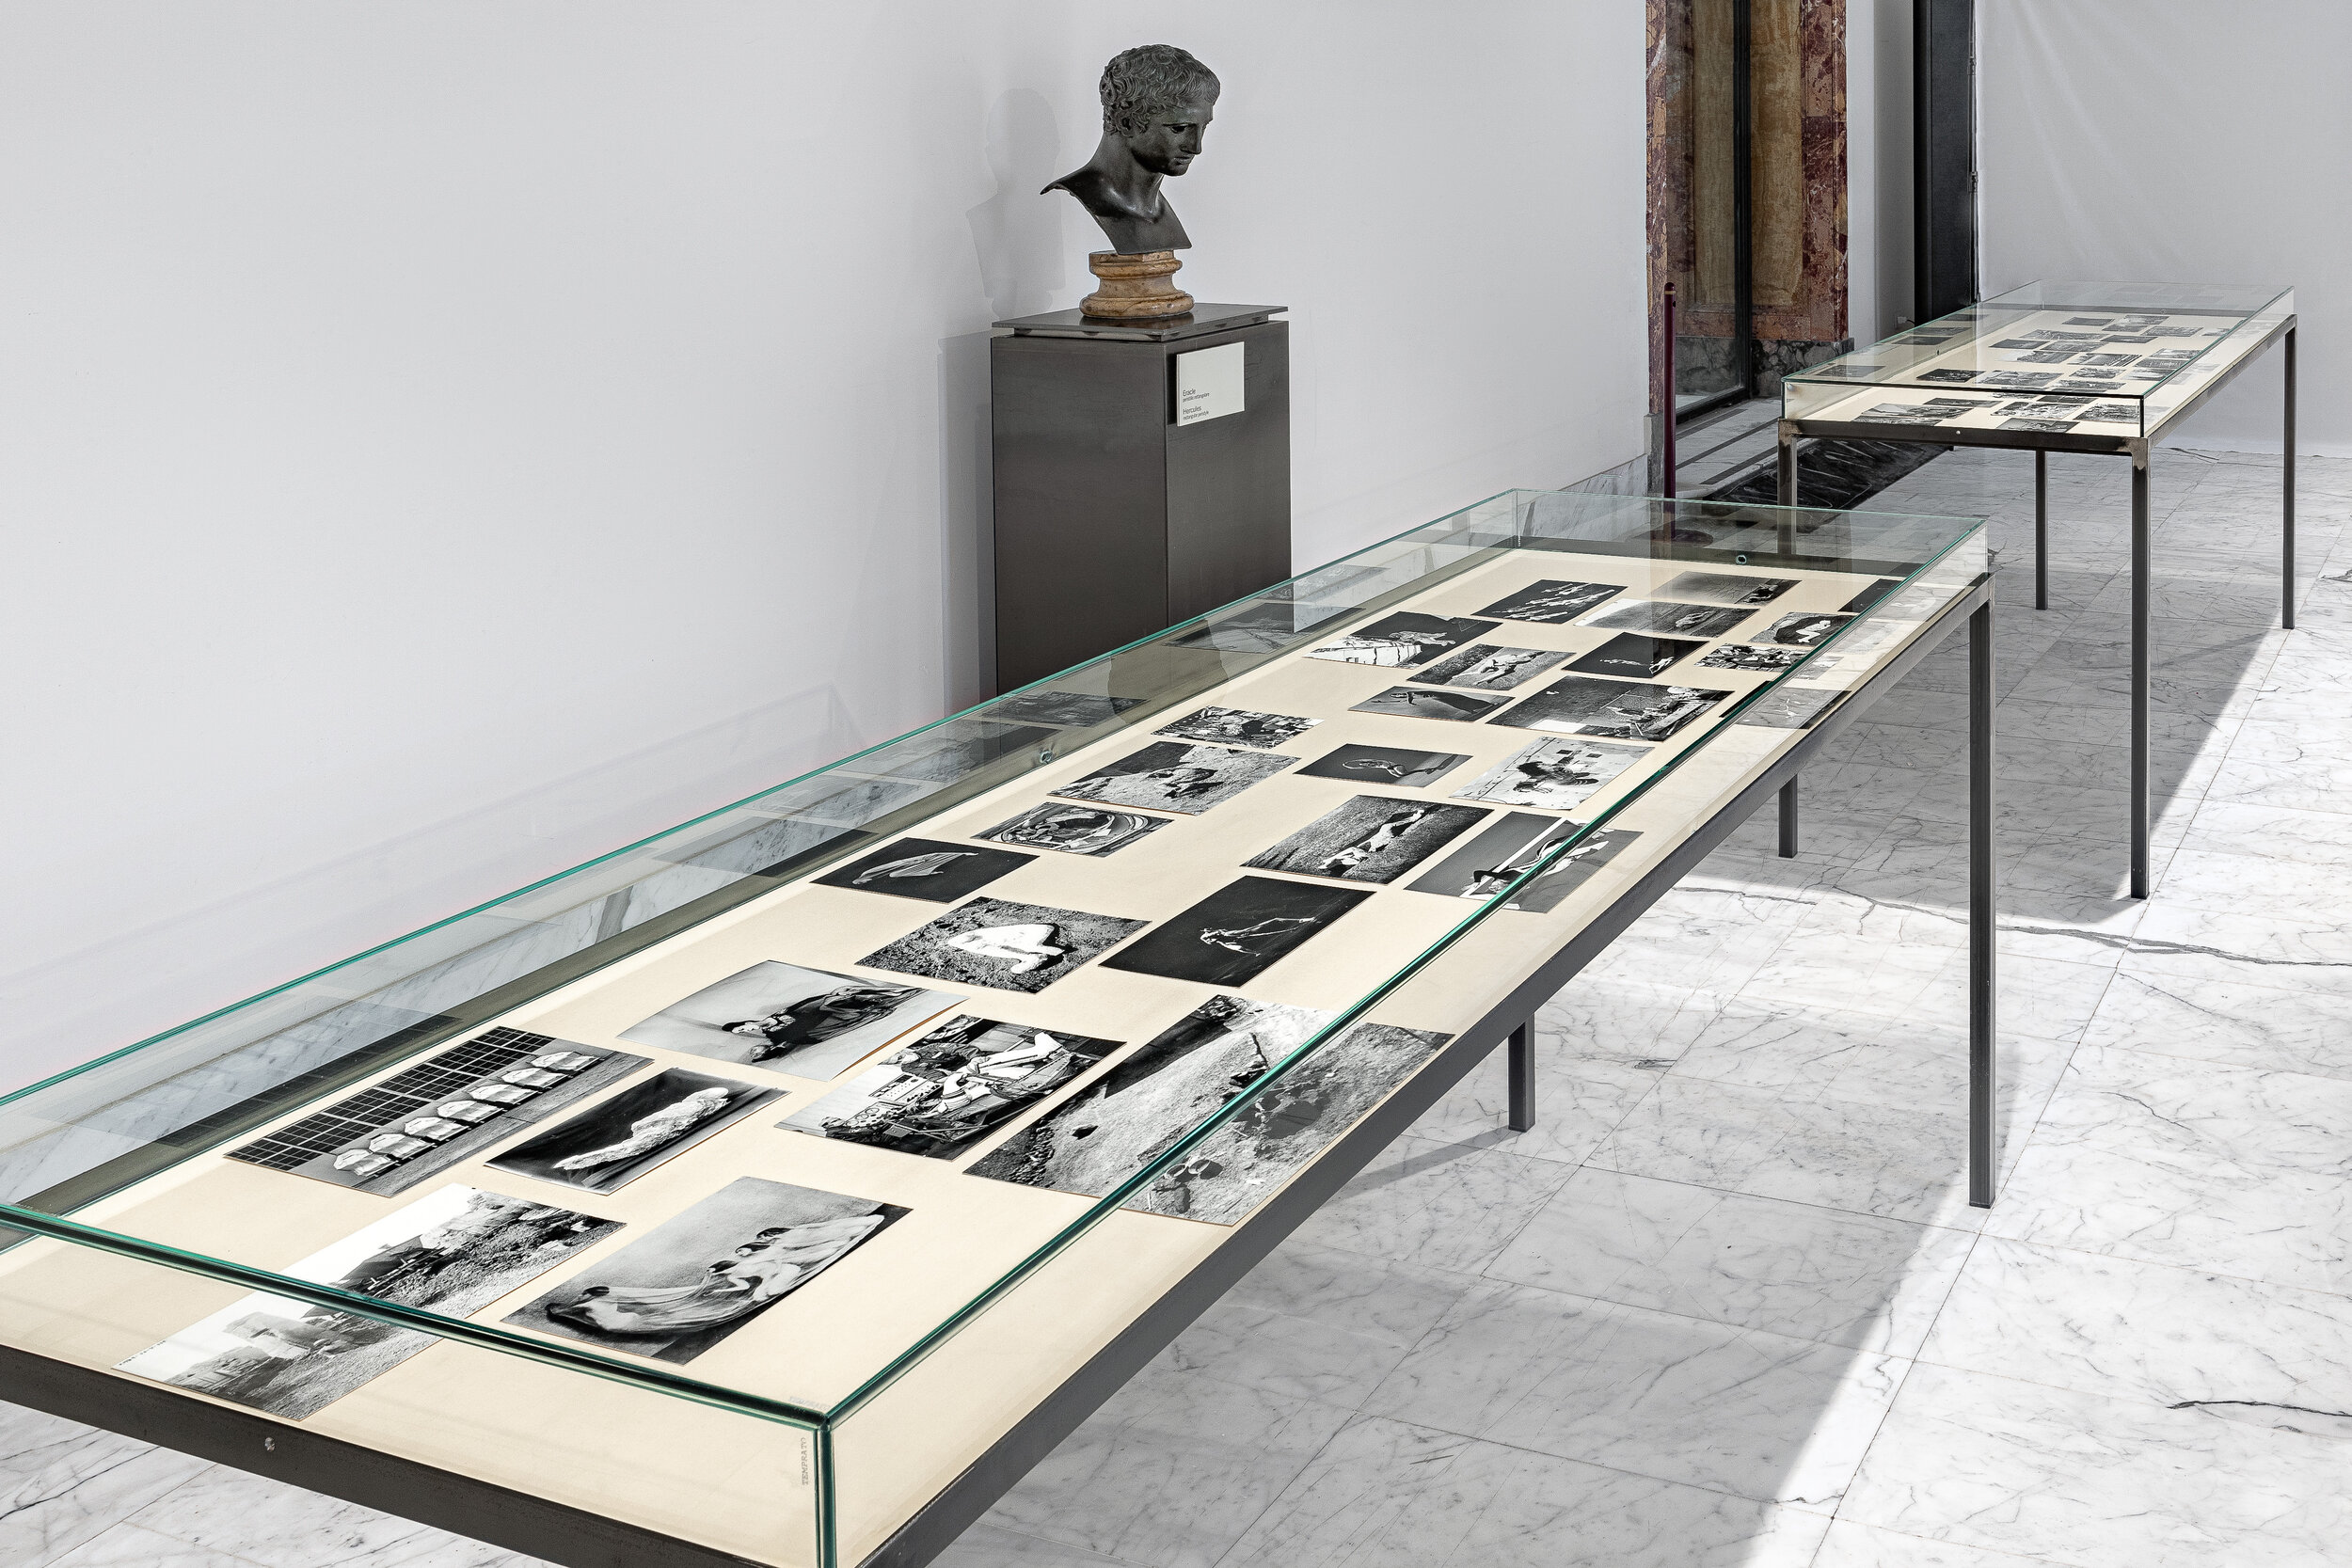 Attitude 1 and Attitude 2   Steel and glass vitrine, black and white photographs, fabric    100 x 210 x 75 cm    2019